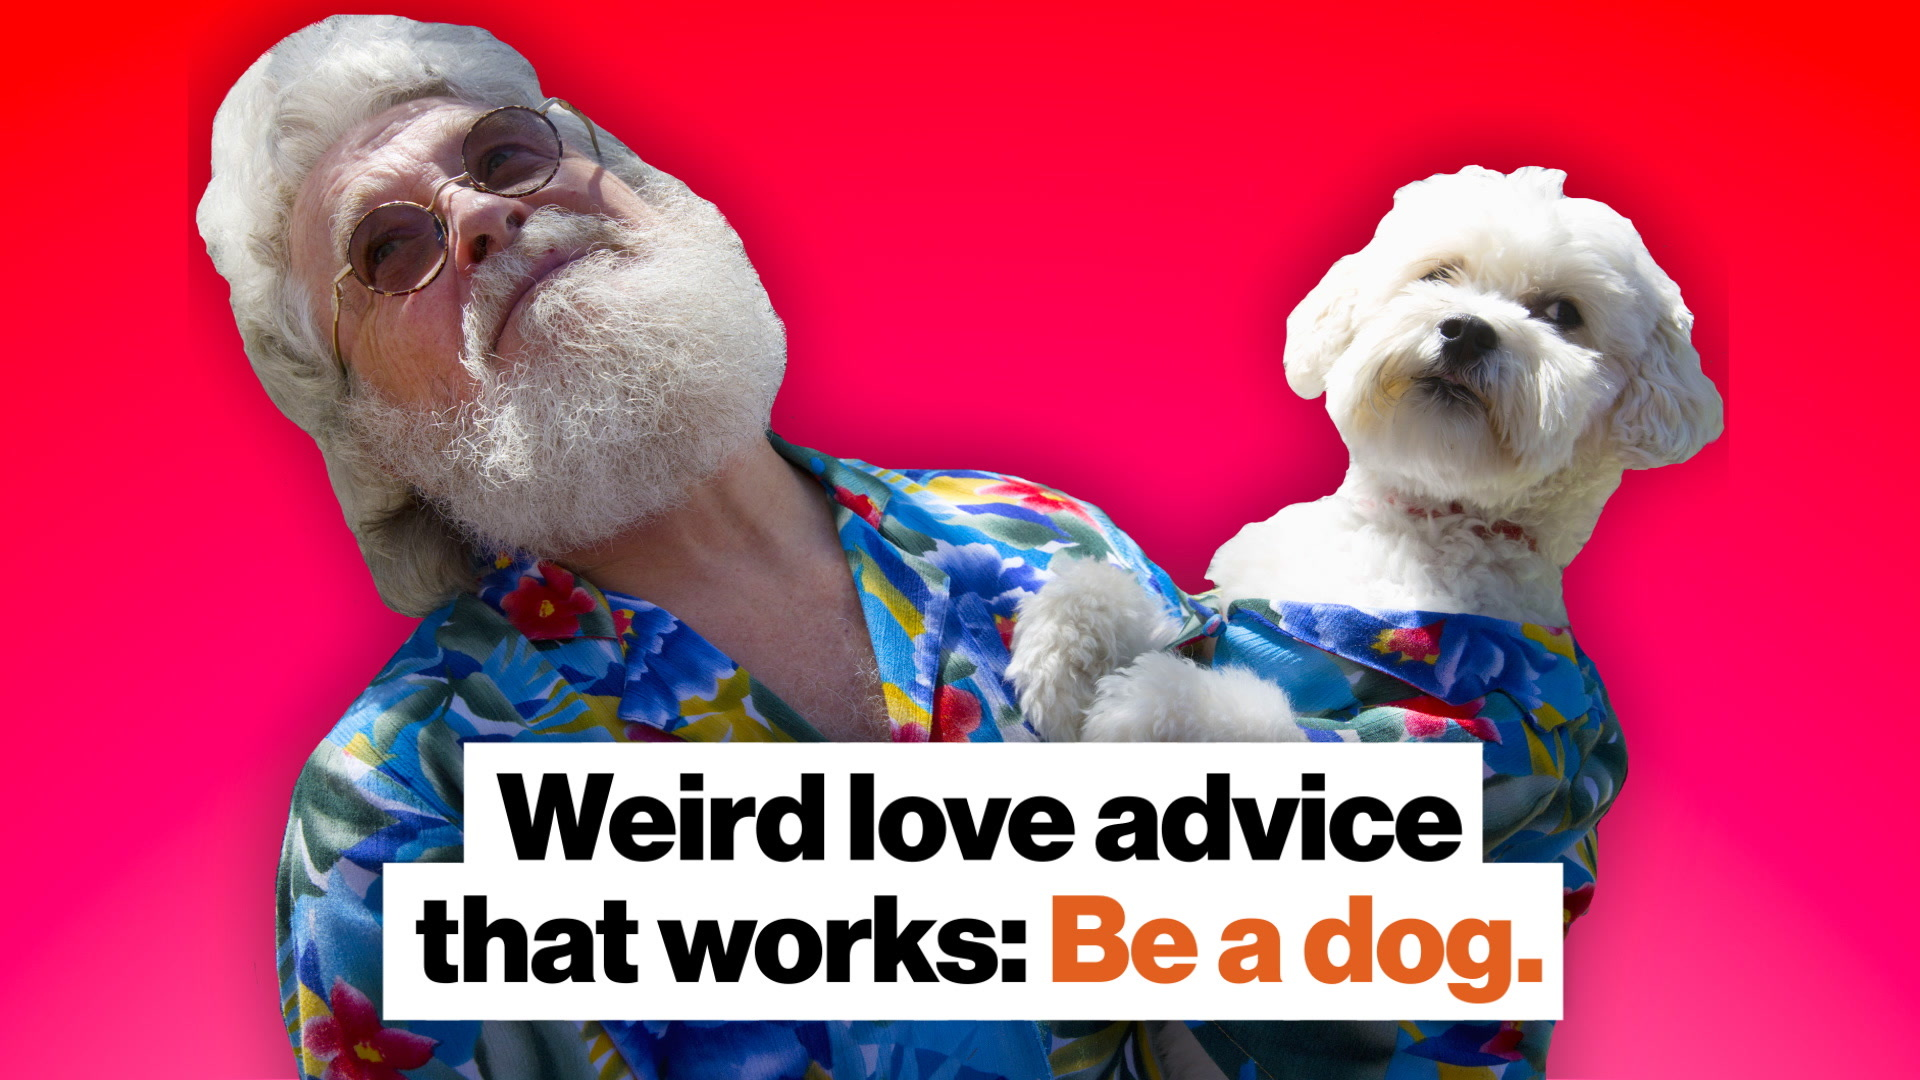 Weird love advice that works: Be a dog.